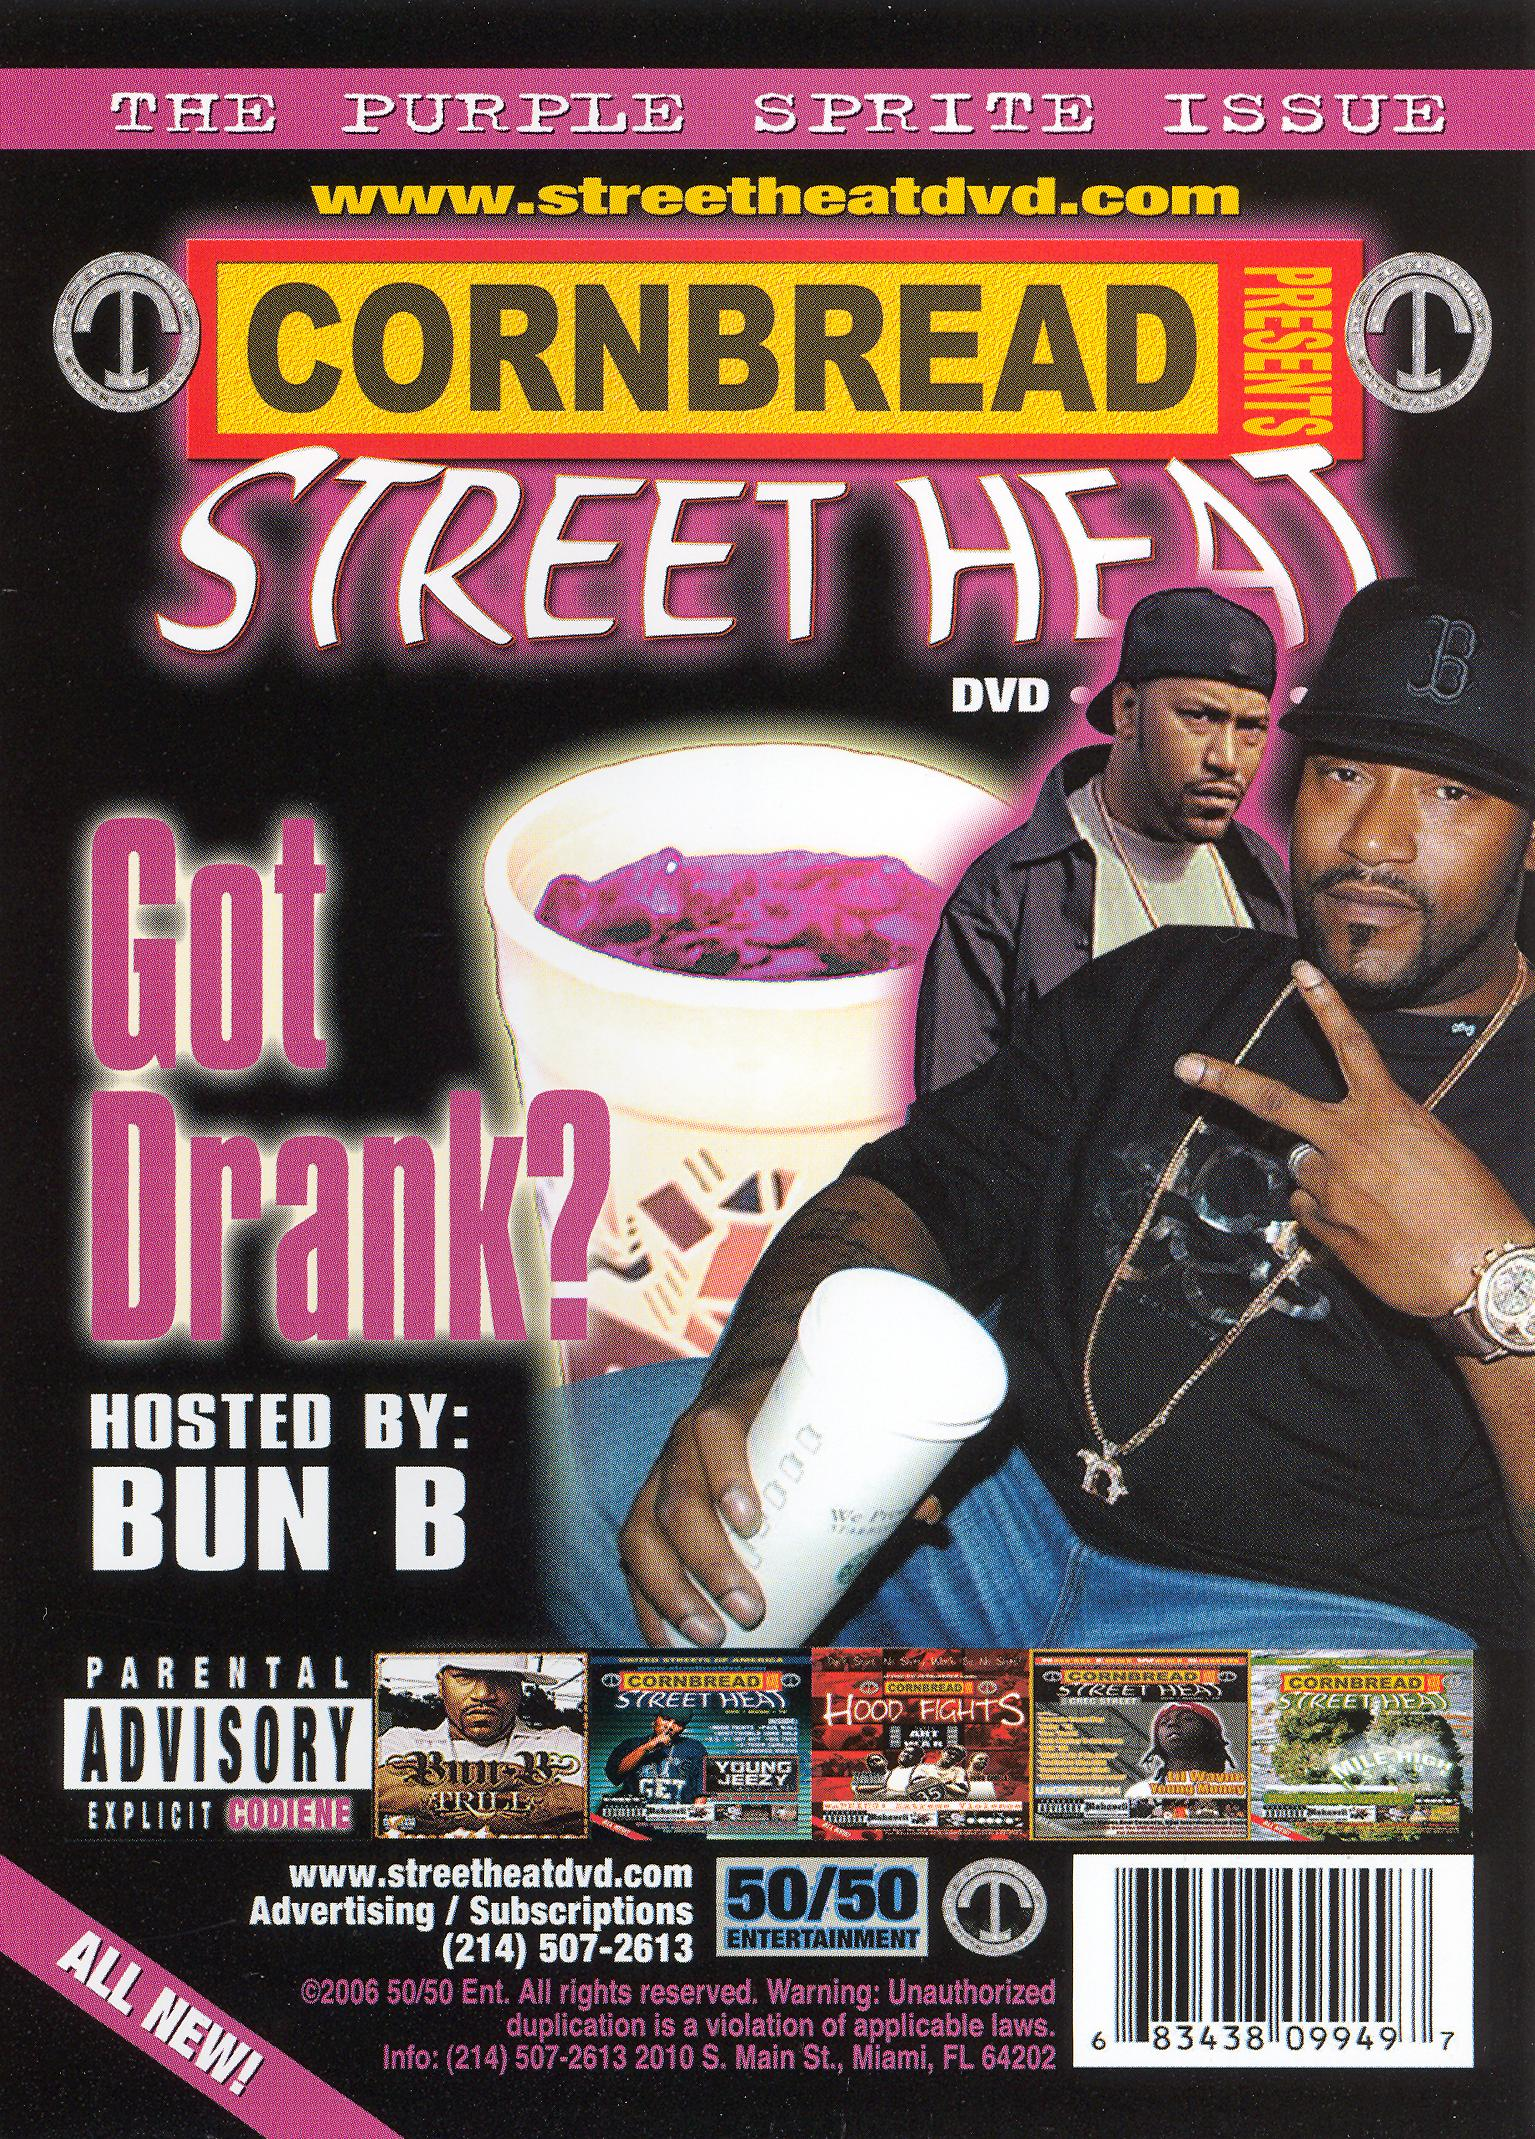 Cornbread Presents Street Heat, Vol. 17: Got Drank